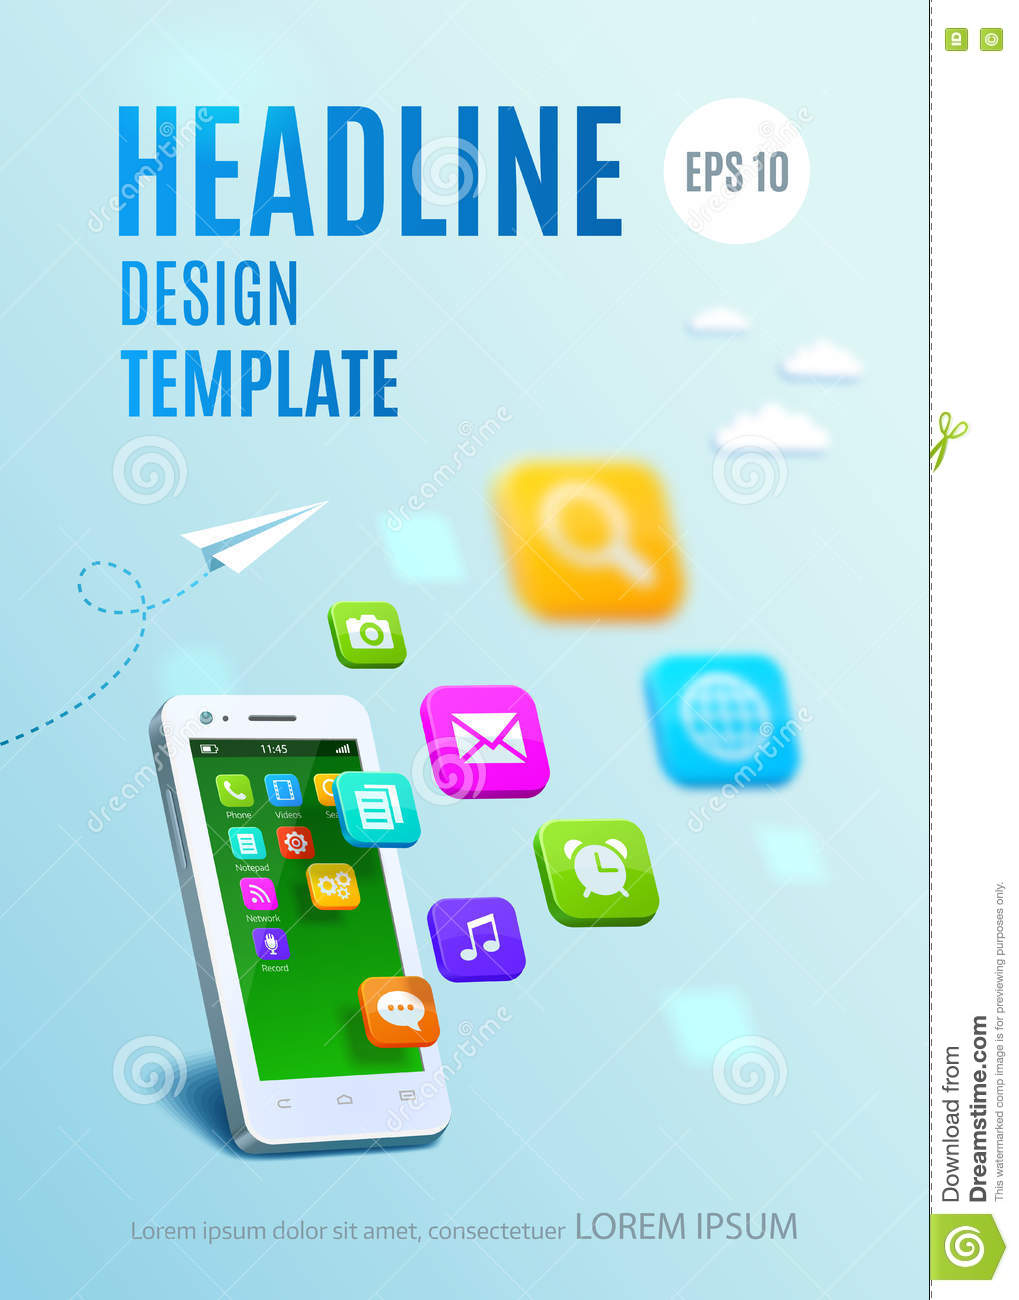 Book Cover Design App : Messaging cartoons illustrations vector stock images